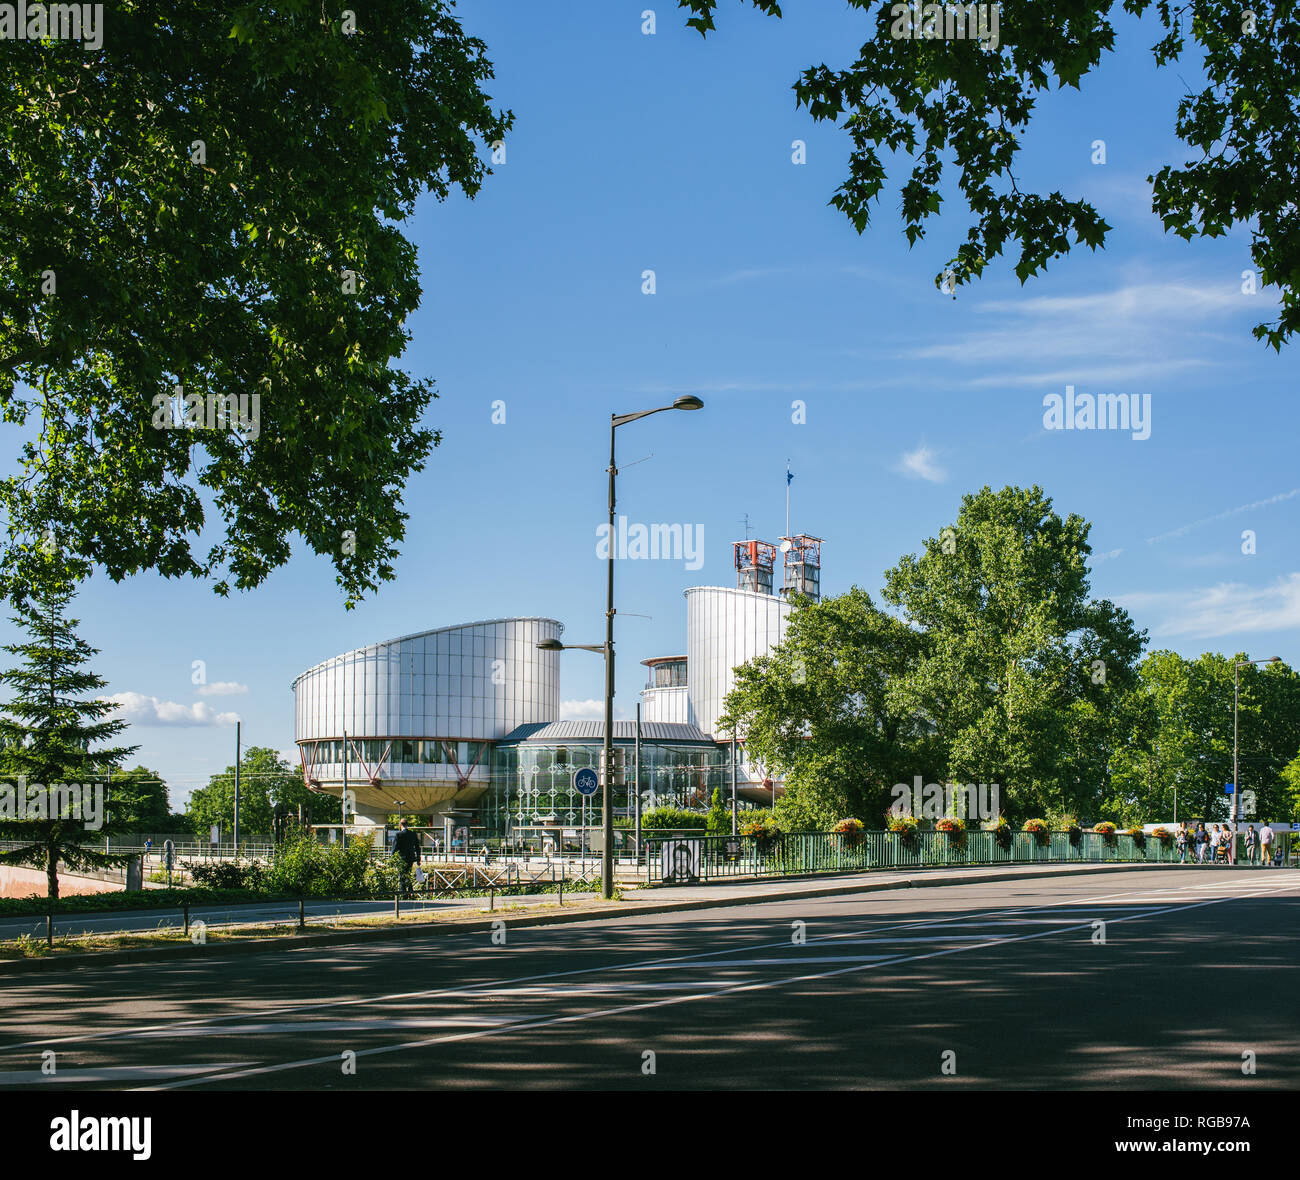 STRASBOURG, FRANCE - JUN 25, 2018: European Court of Human Rights building in the summer evening - Stock Image